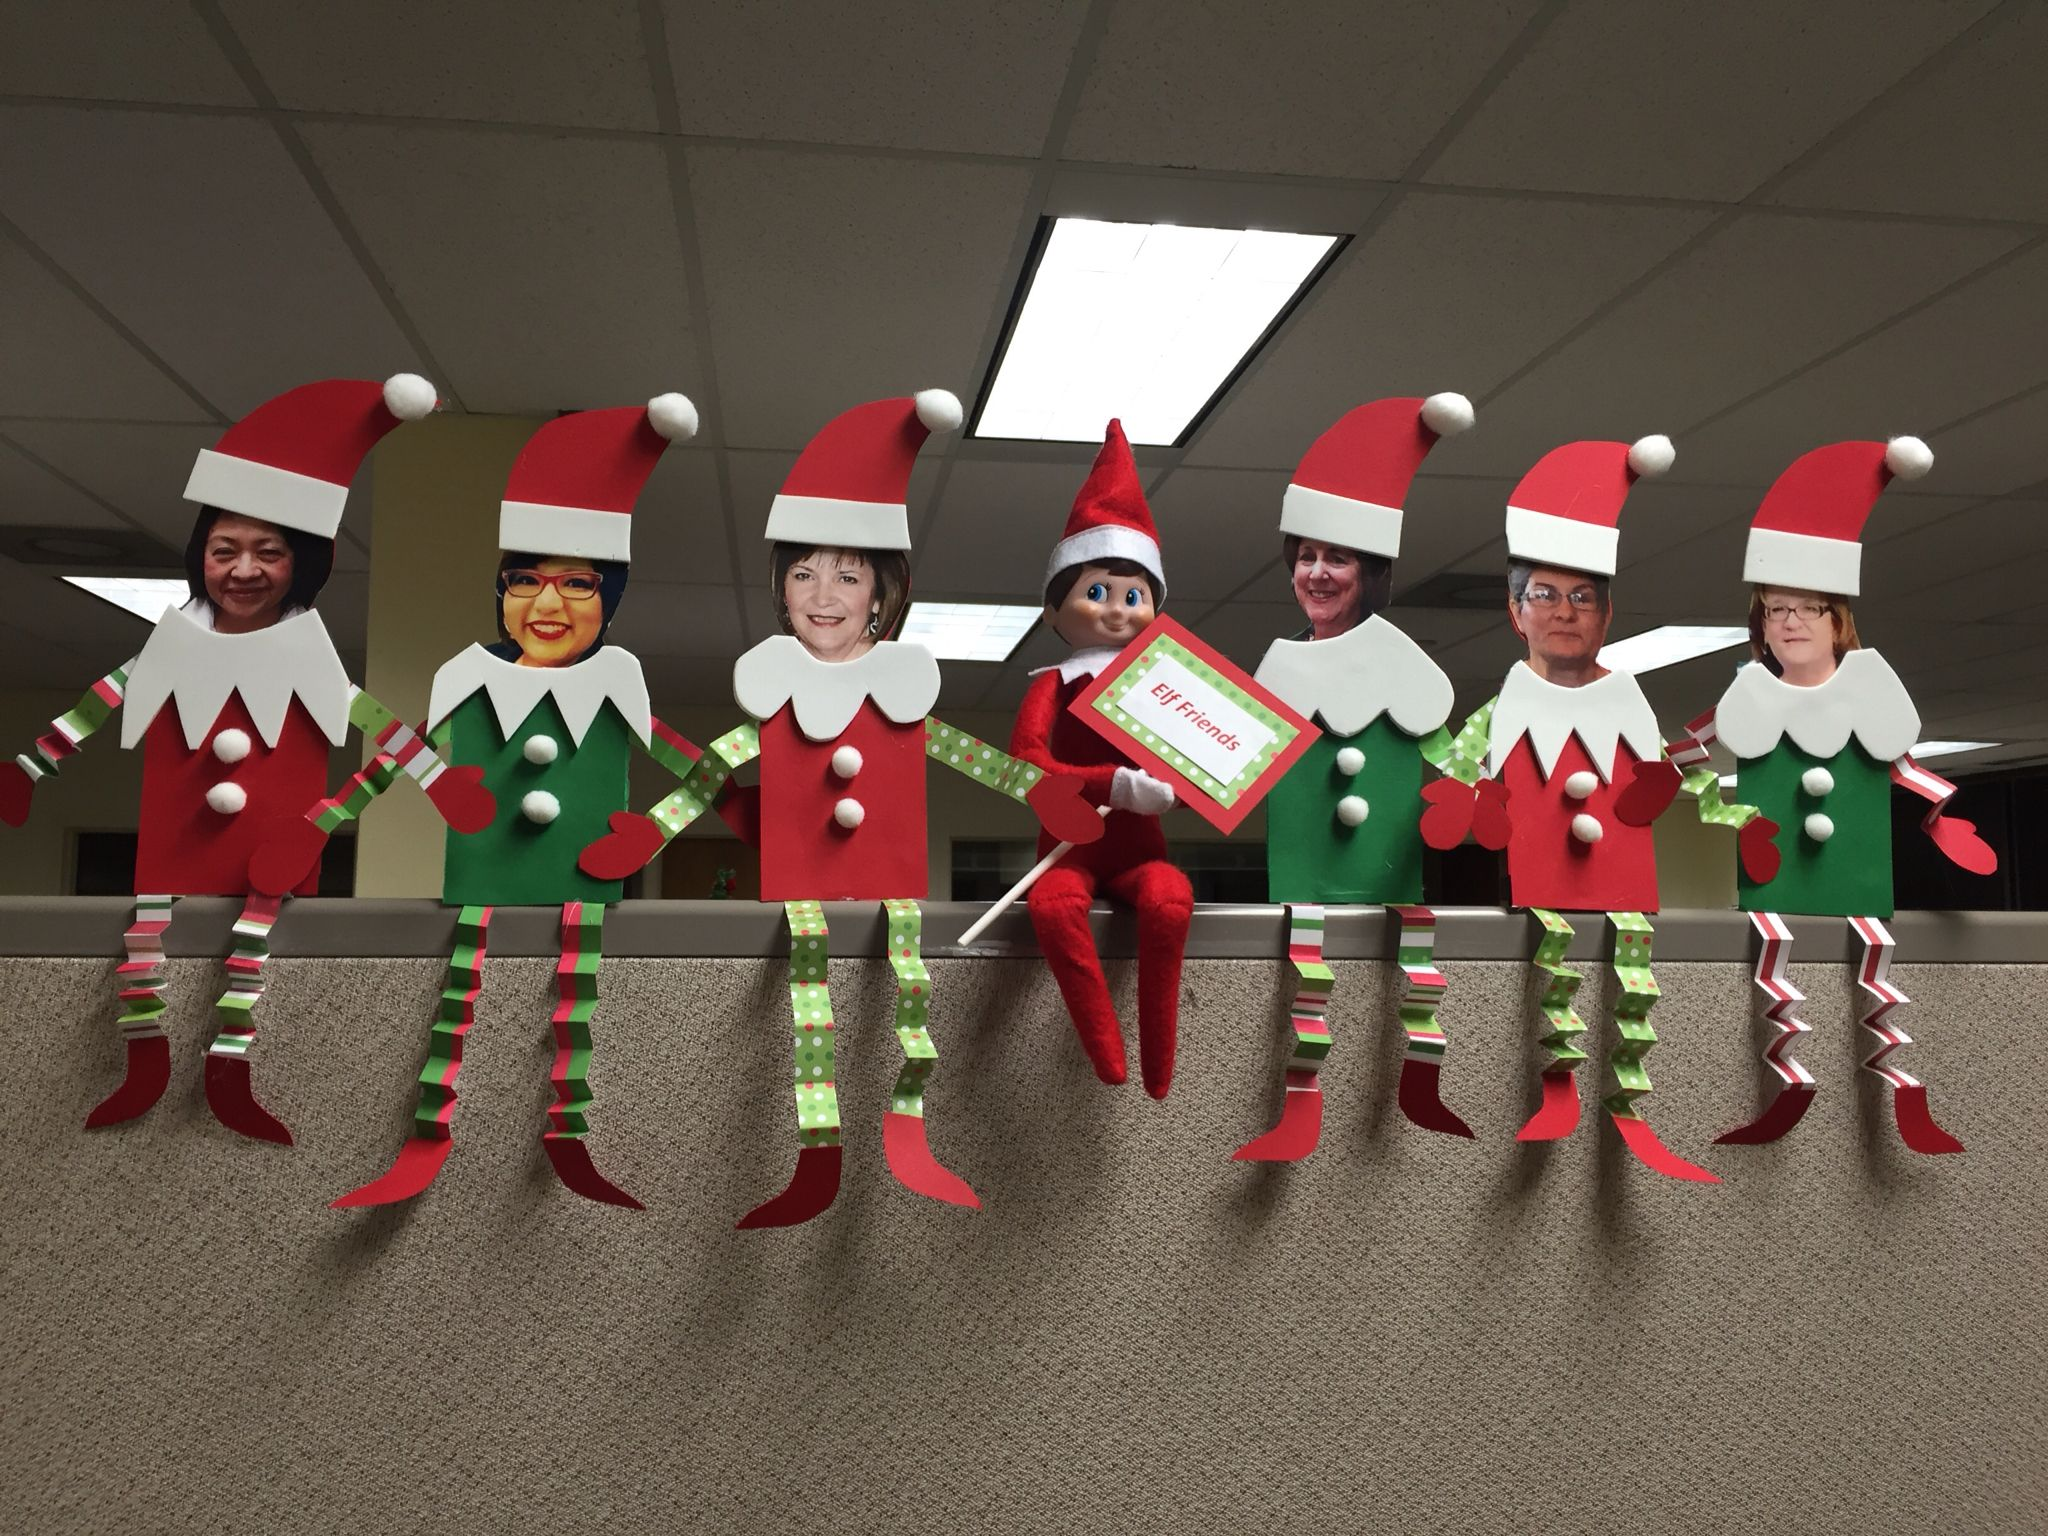 Diy christmas party decorations - Elf On The Shelf At The Office Elf Friends